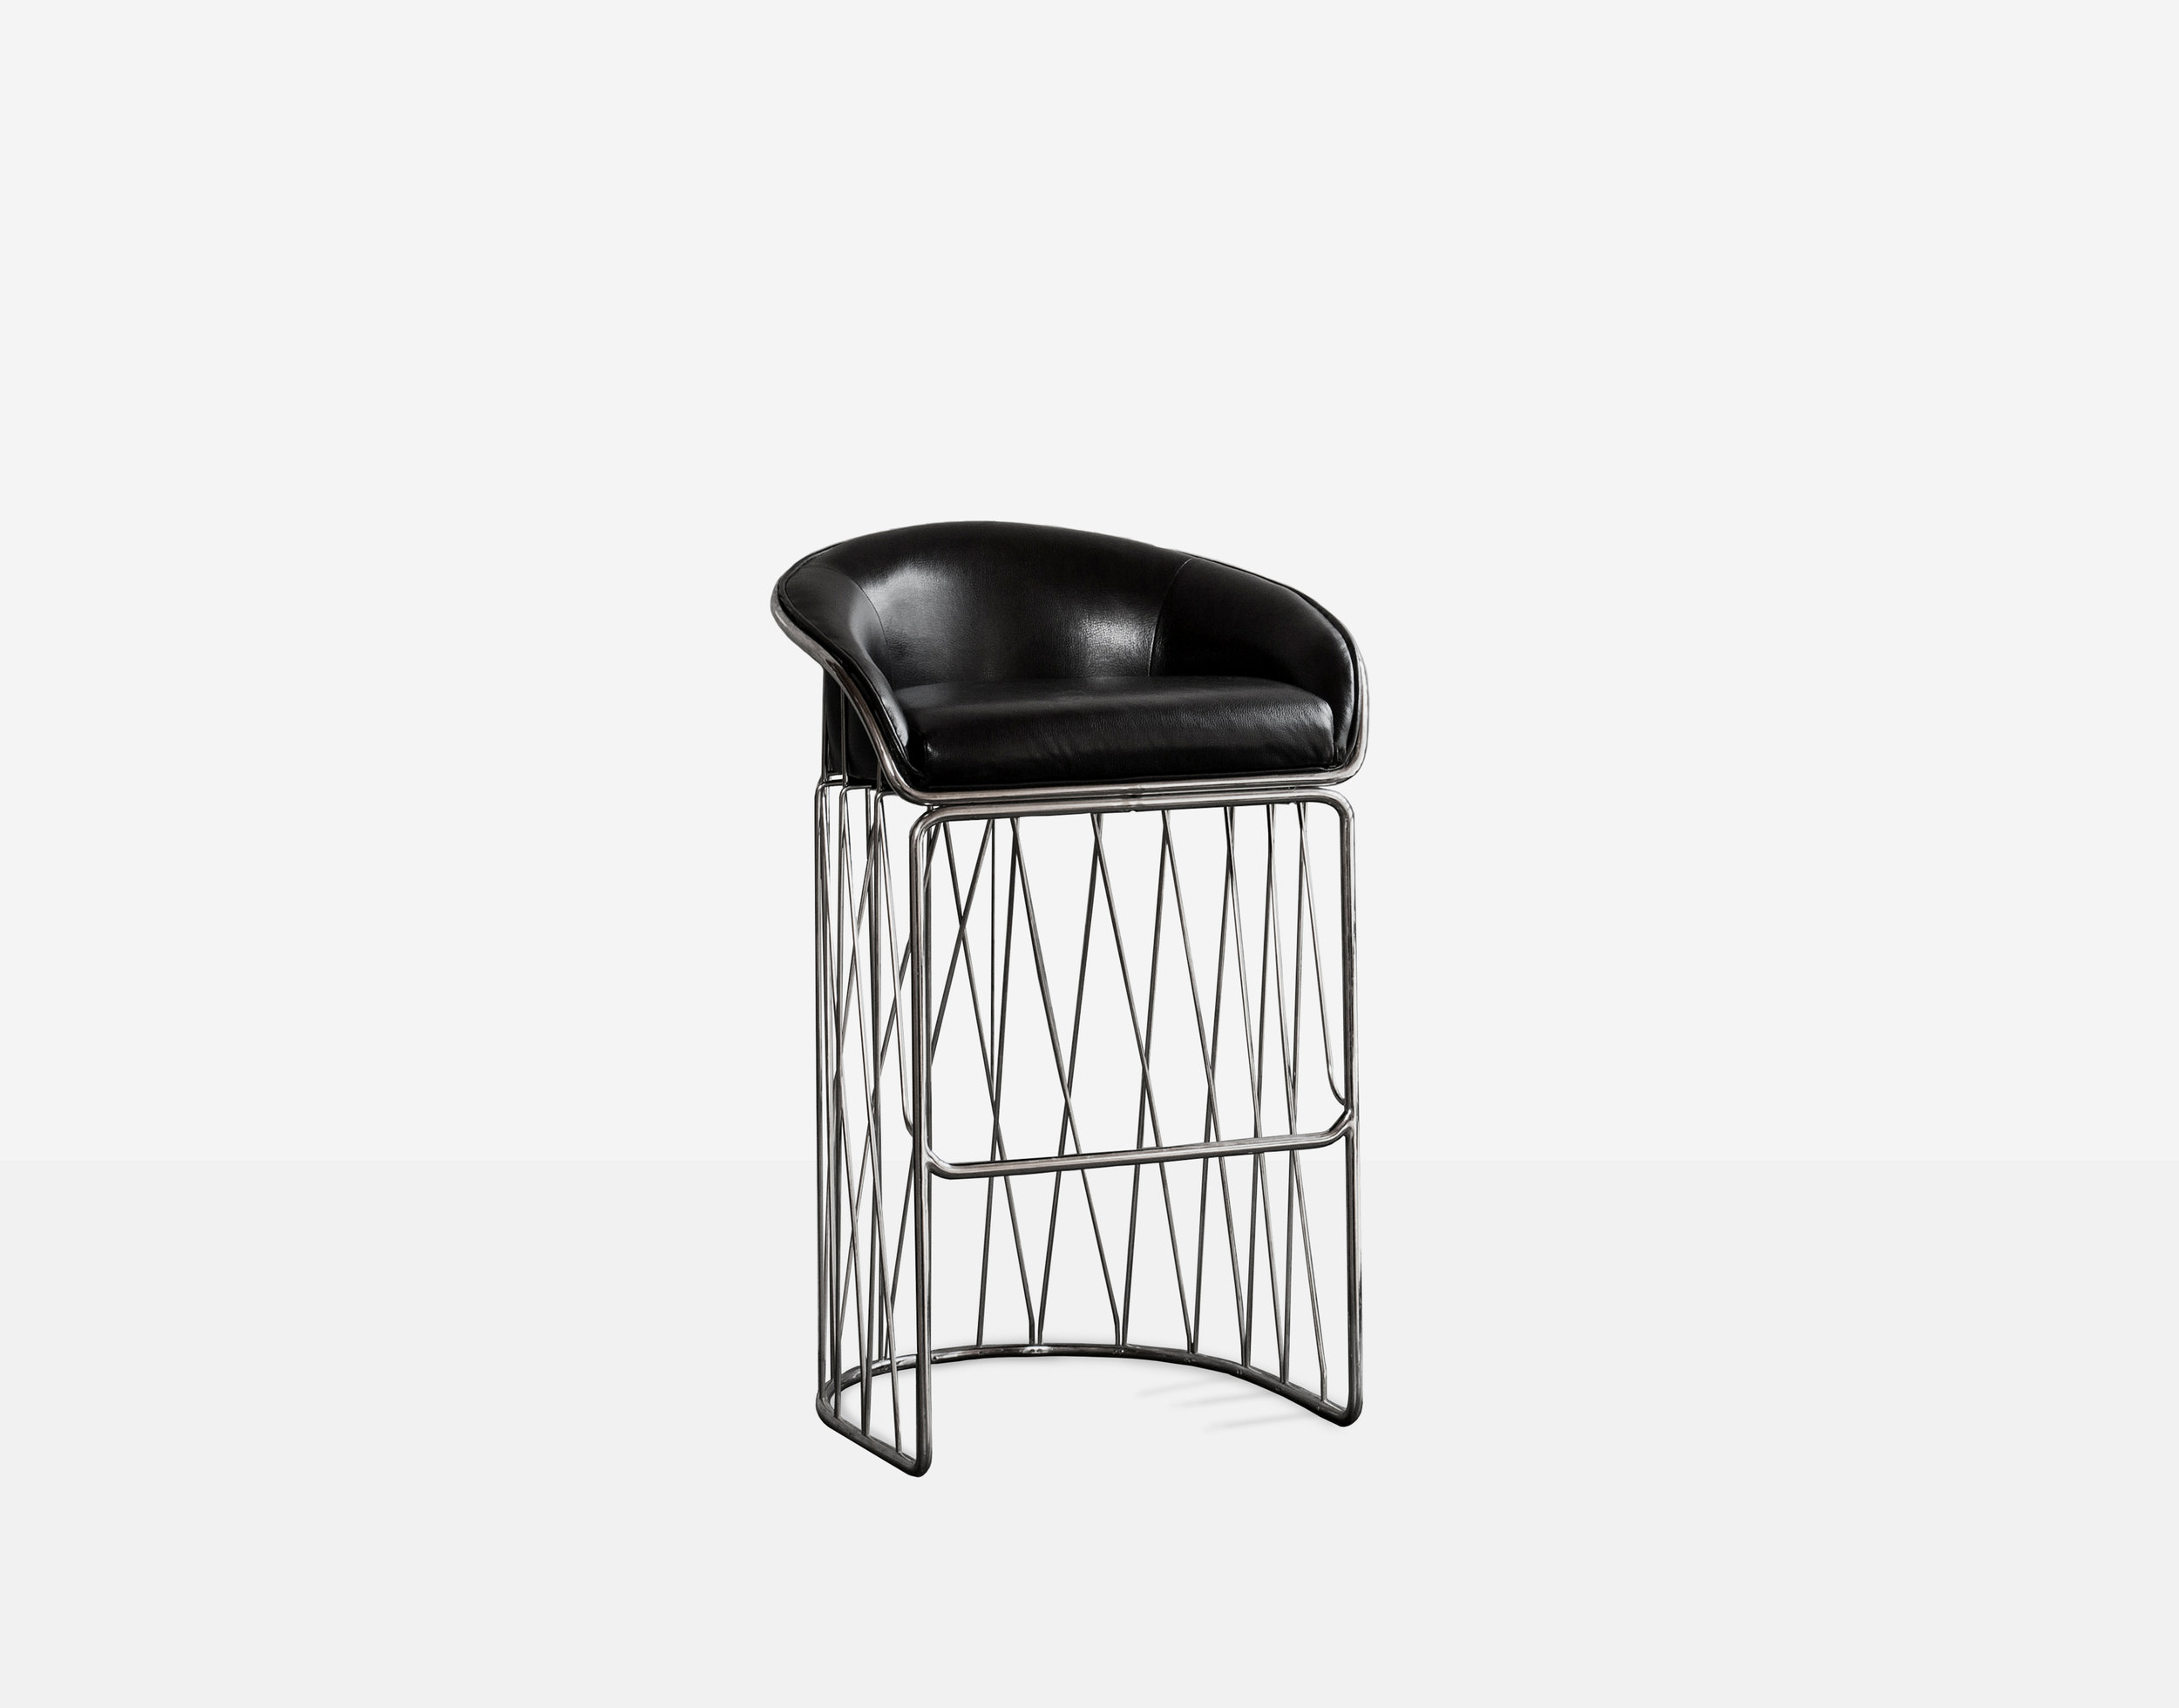 Luteca_PRV_Equipal-Stool_Black-Leather-Chrome-Steel_FP-W.jpg